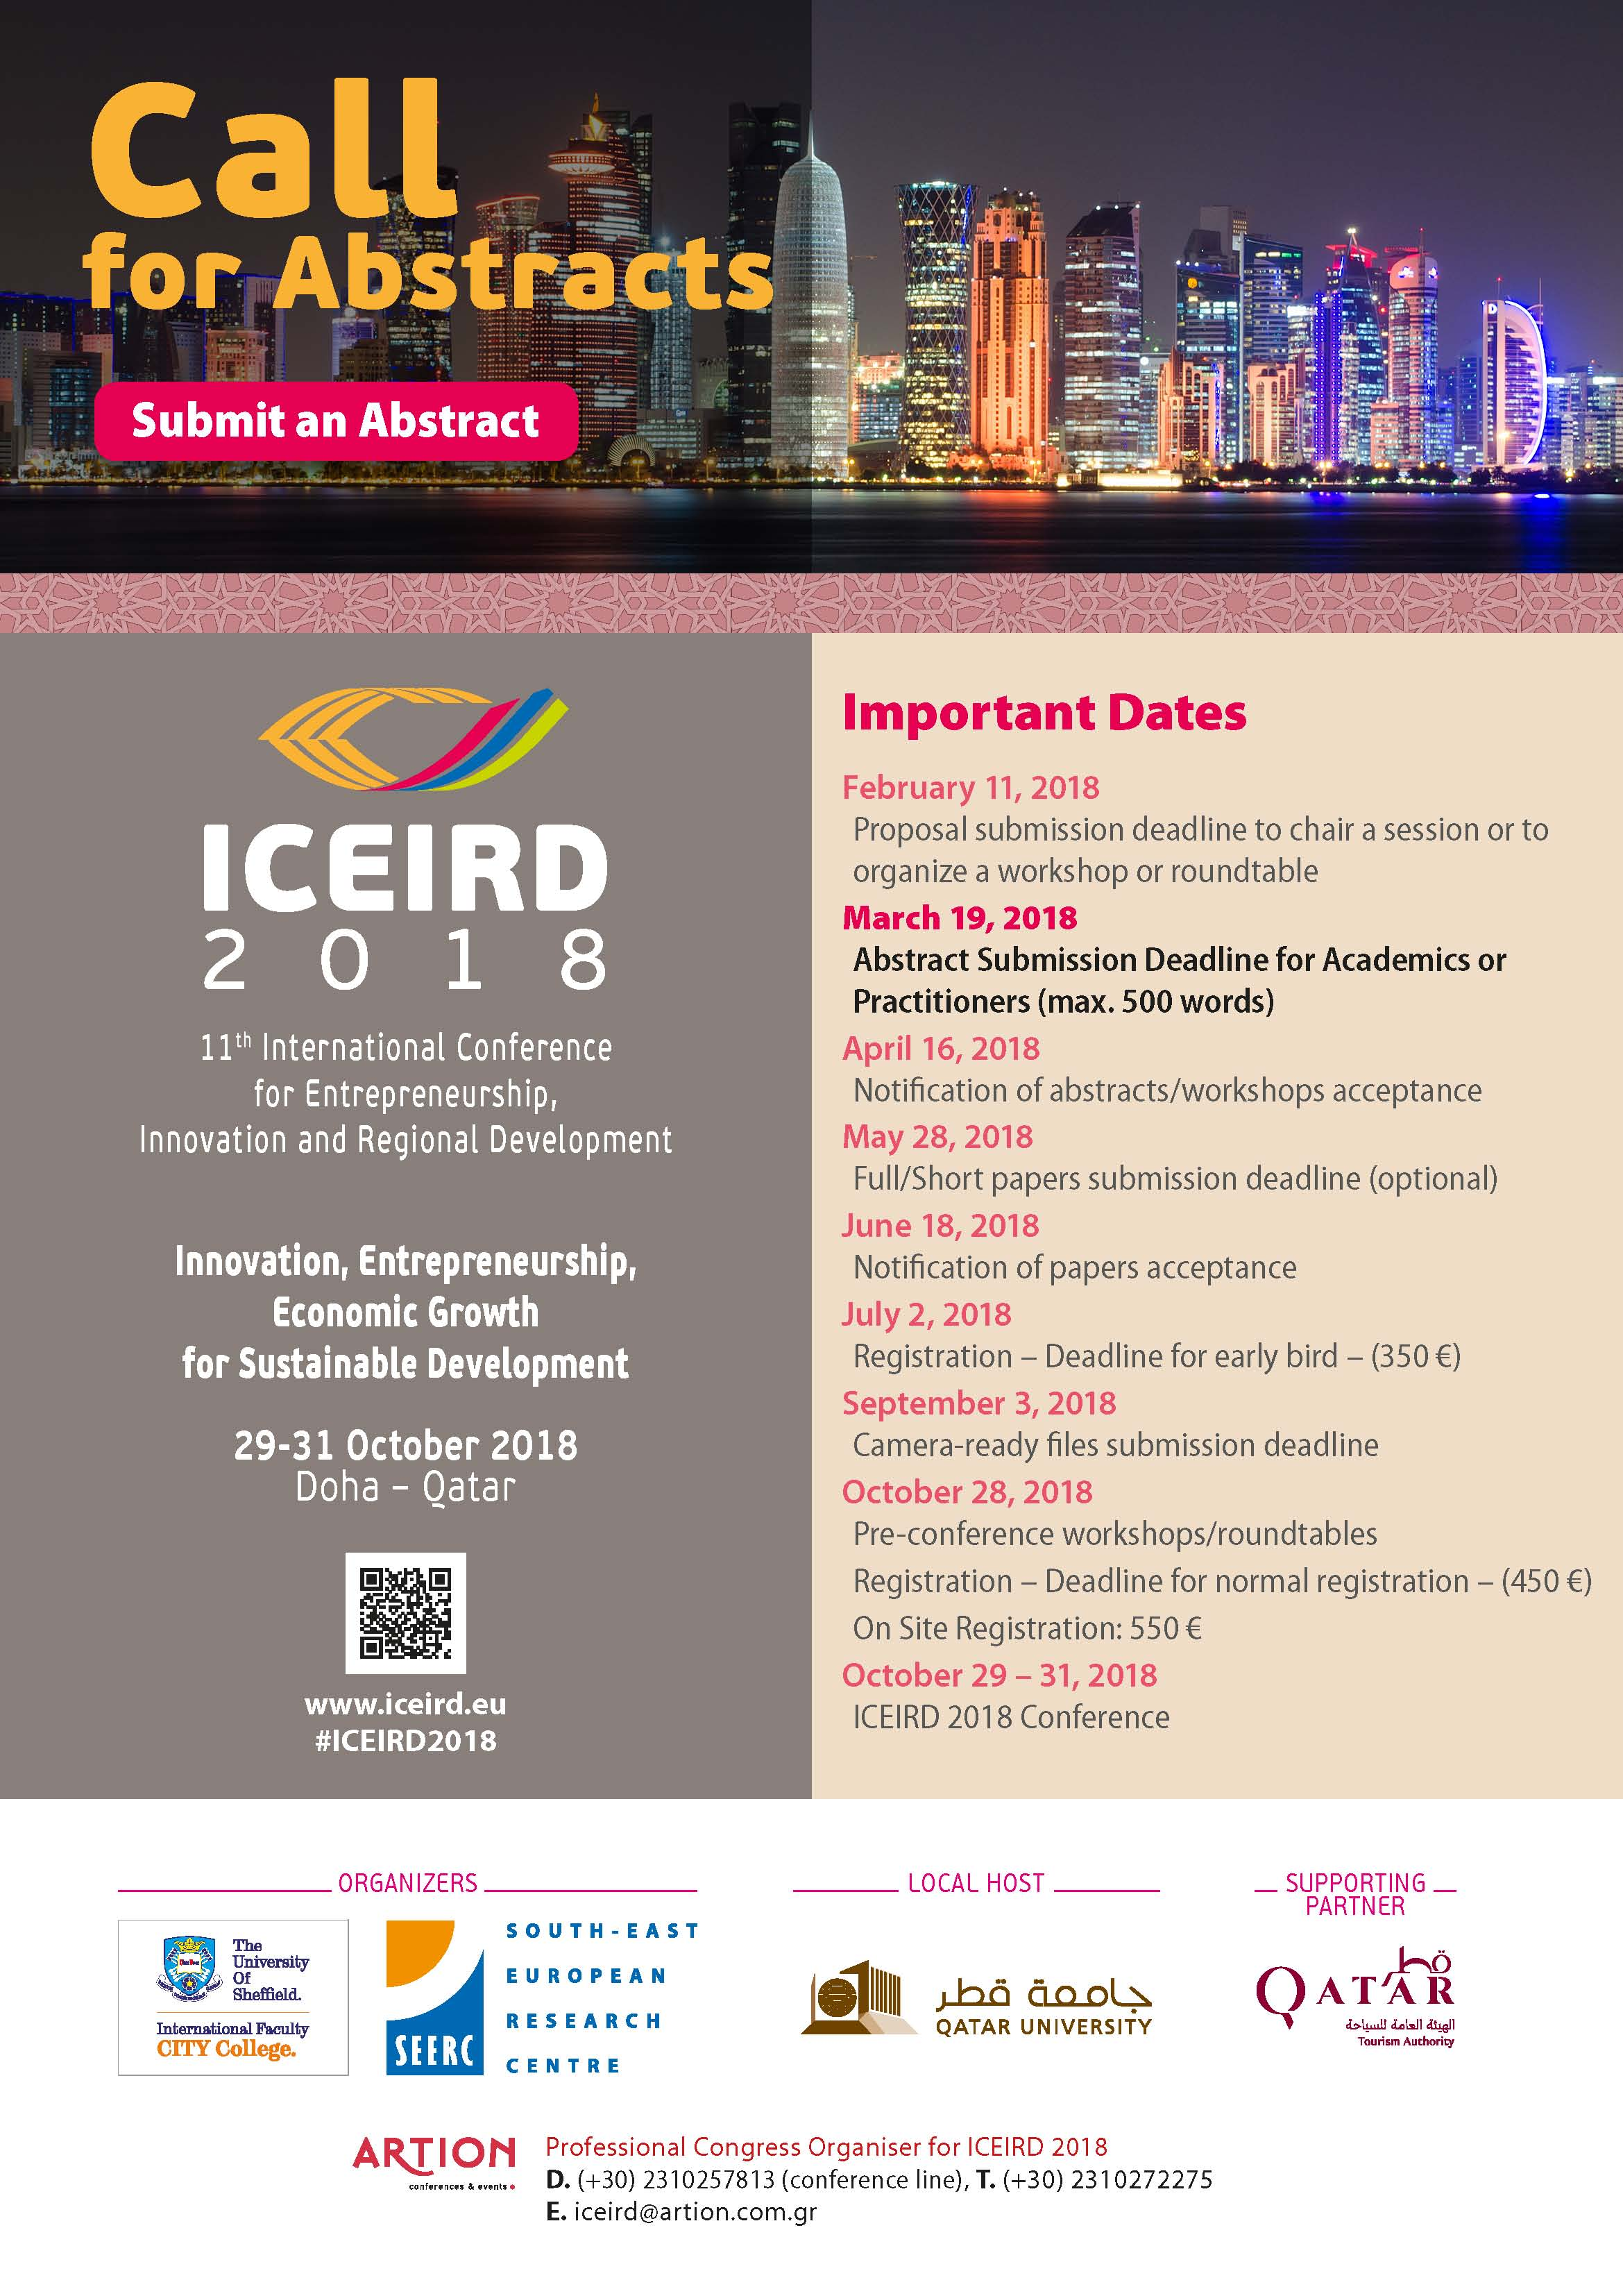 11th International Conference for Entrepreneurship, Innovation and Regional Development (ICEIRD 2018) Call for Abstracts